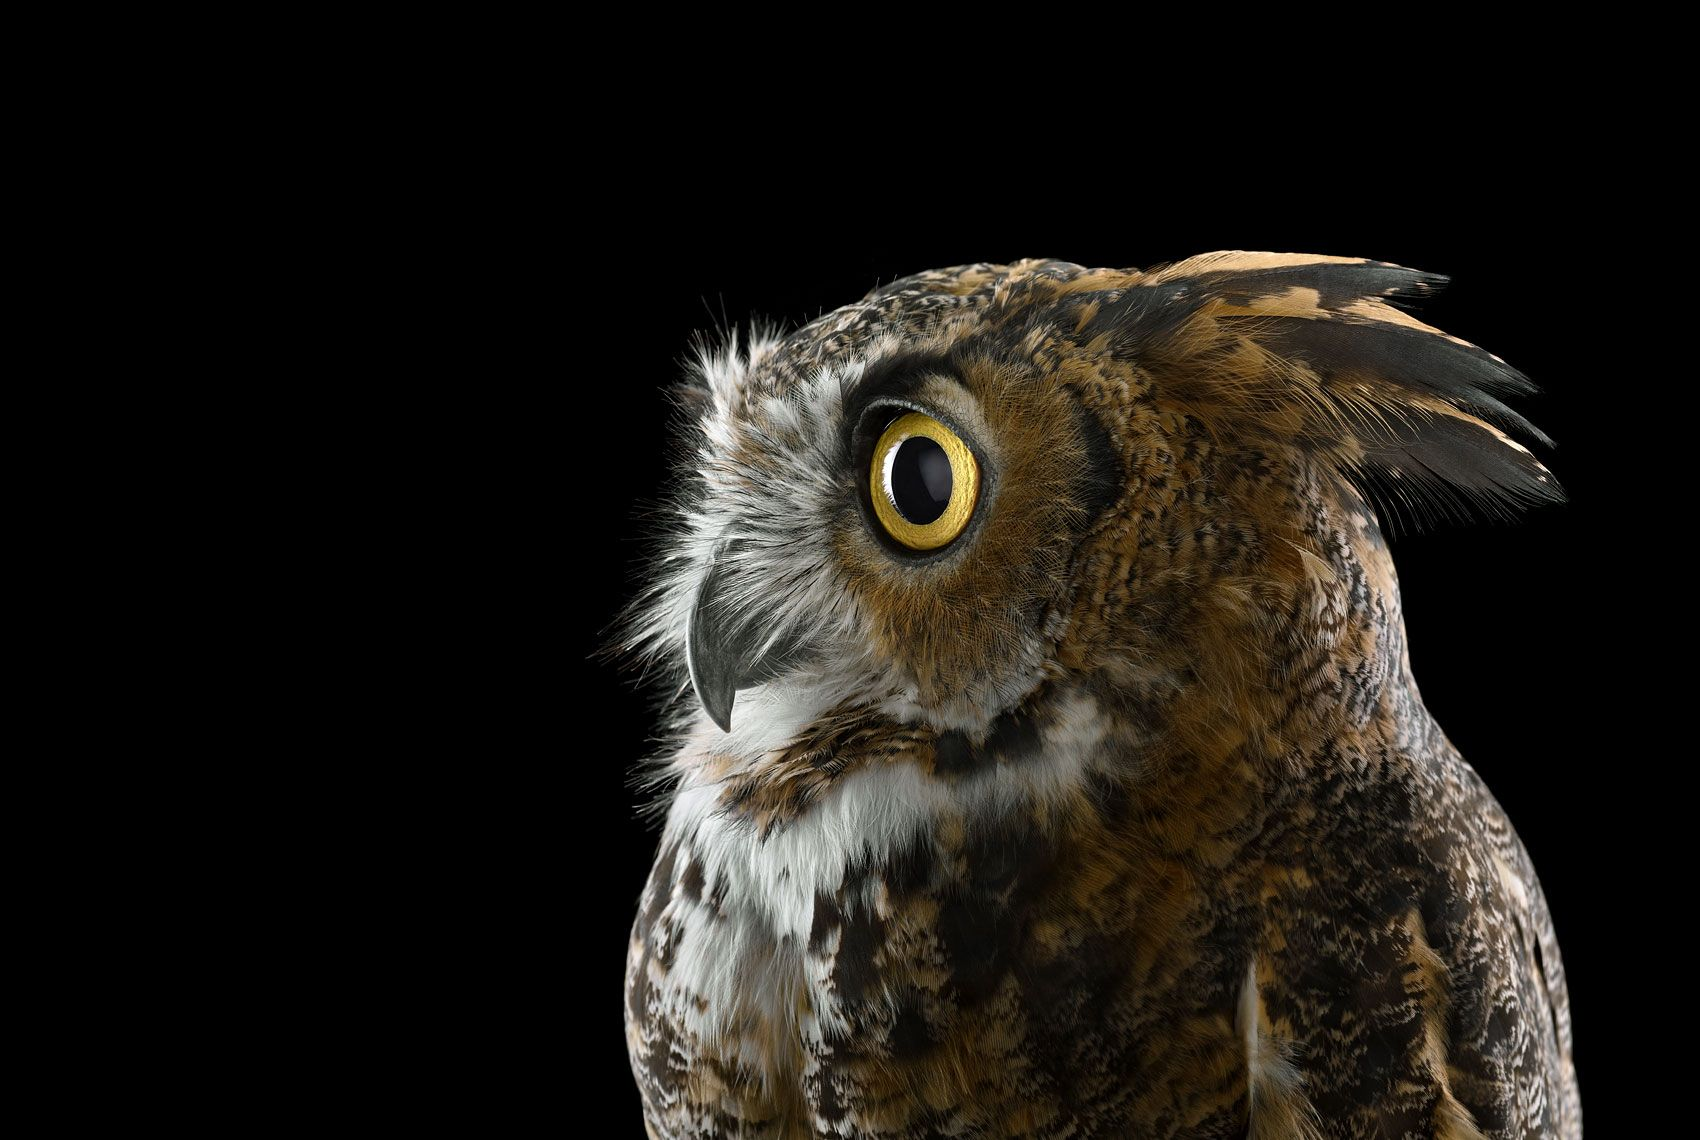 Great Horned Owl #1, Espanola, NM, 2011,Brad Wilson,Photography